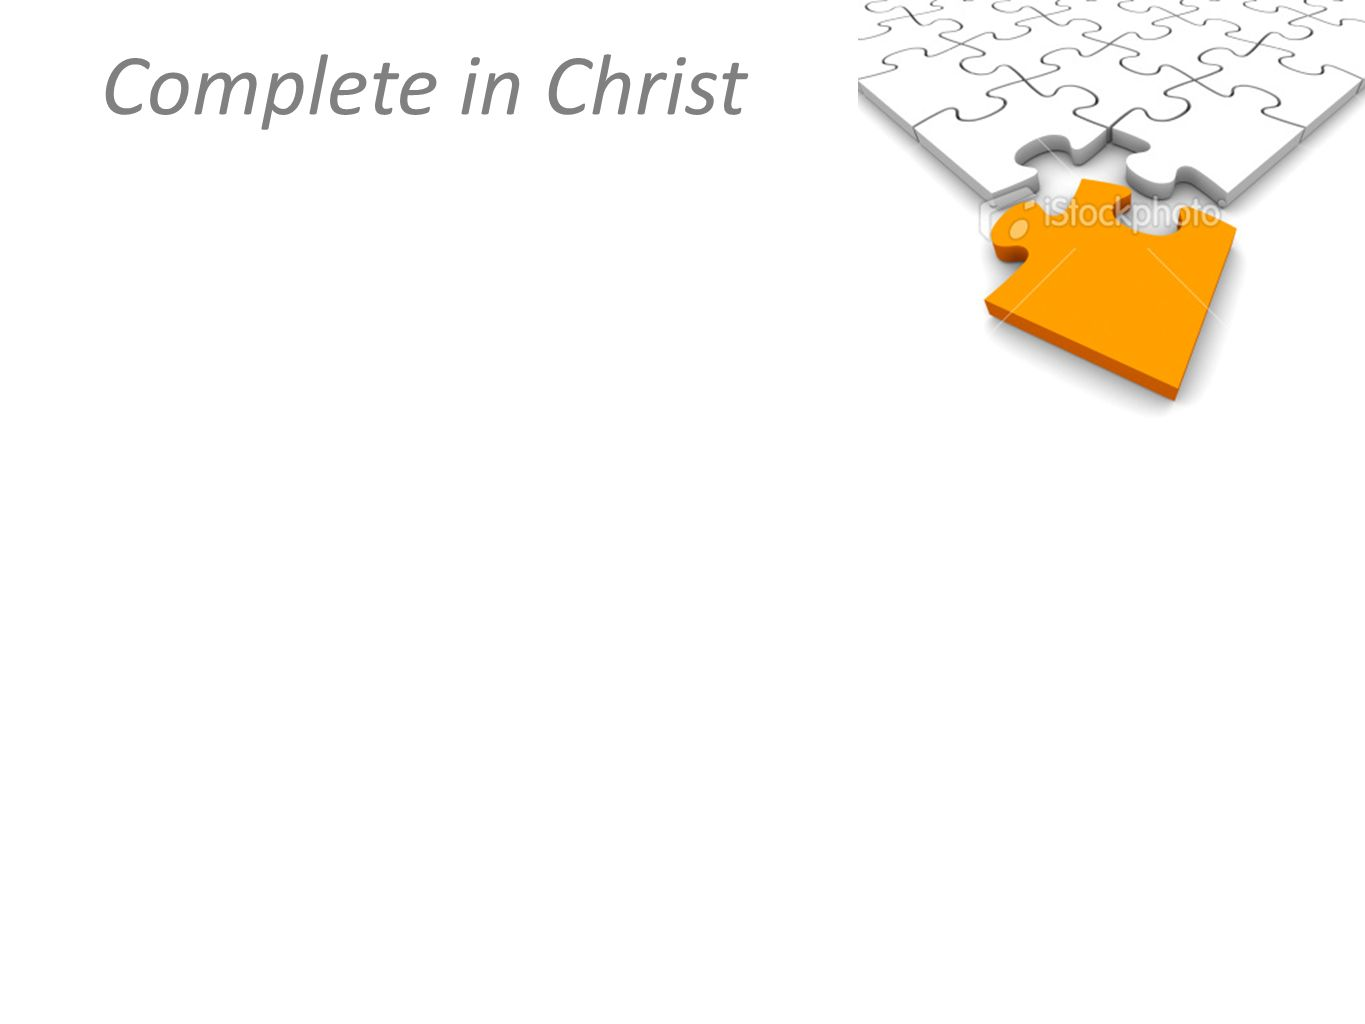 Complete in Christ